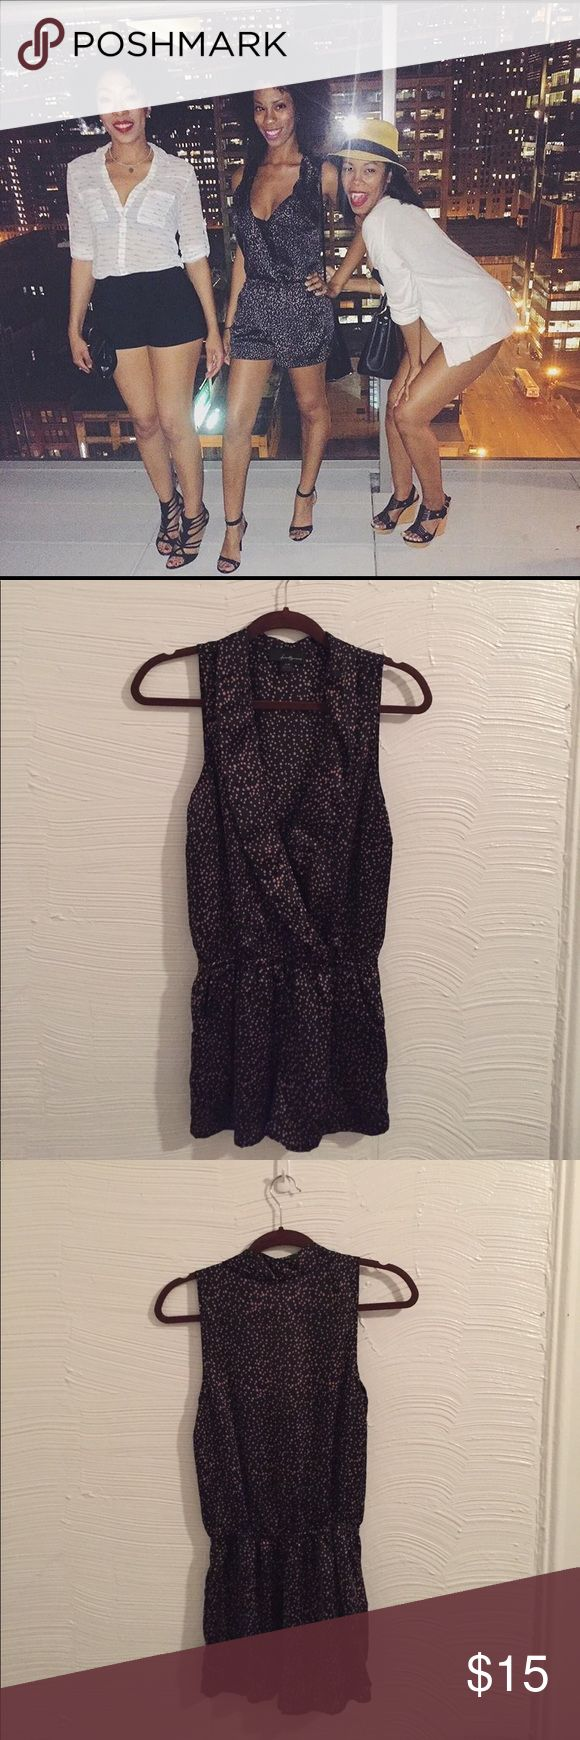 Polka dot romper Black and pink polka dot romper. Low cut in the front. A summer favorite. Forever 21 Pants Jumpsuits & Rompers